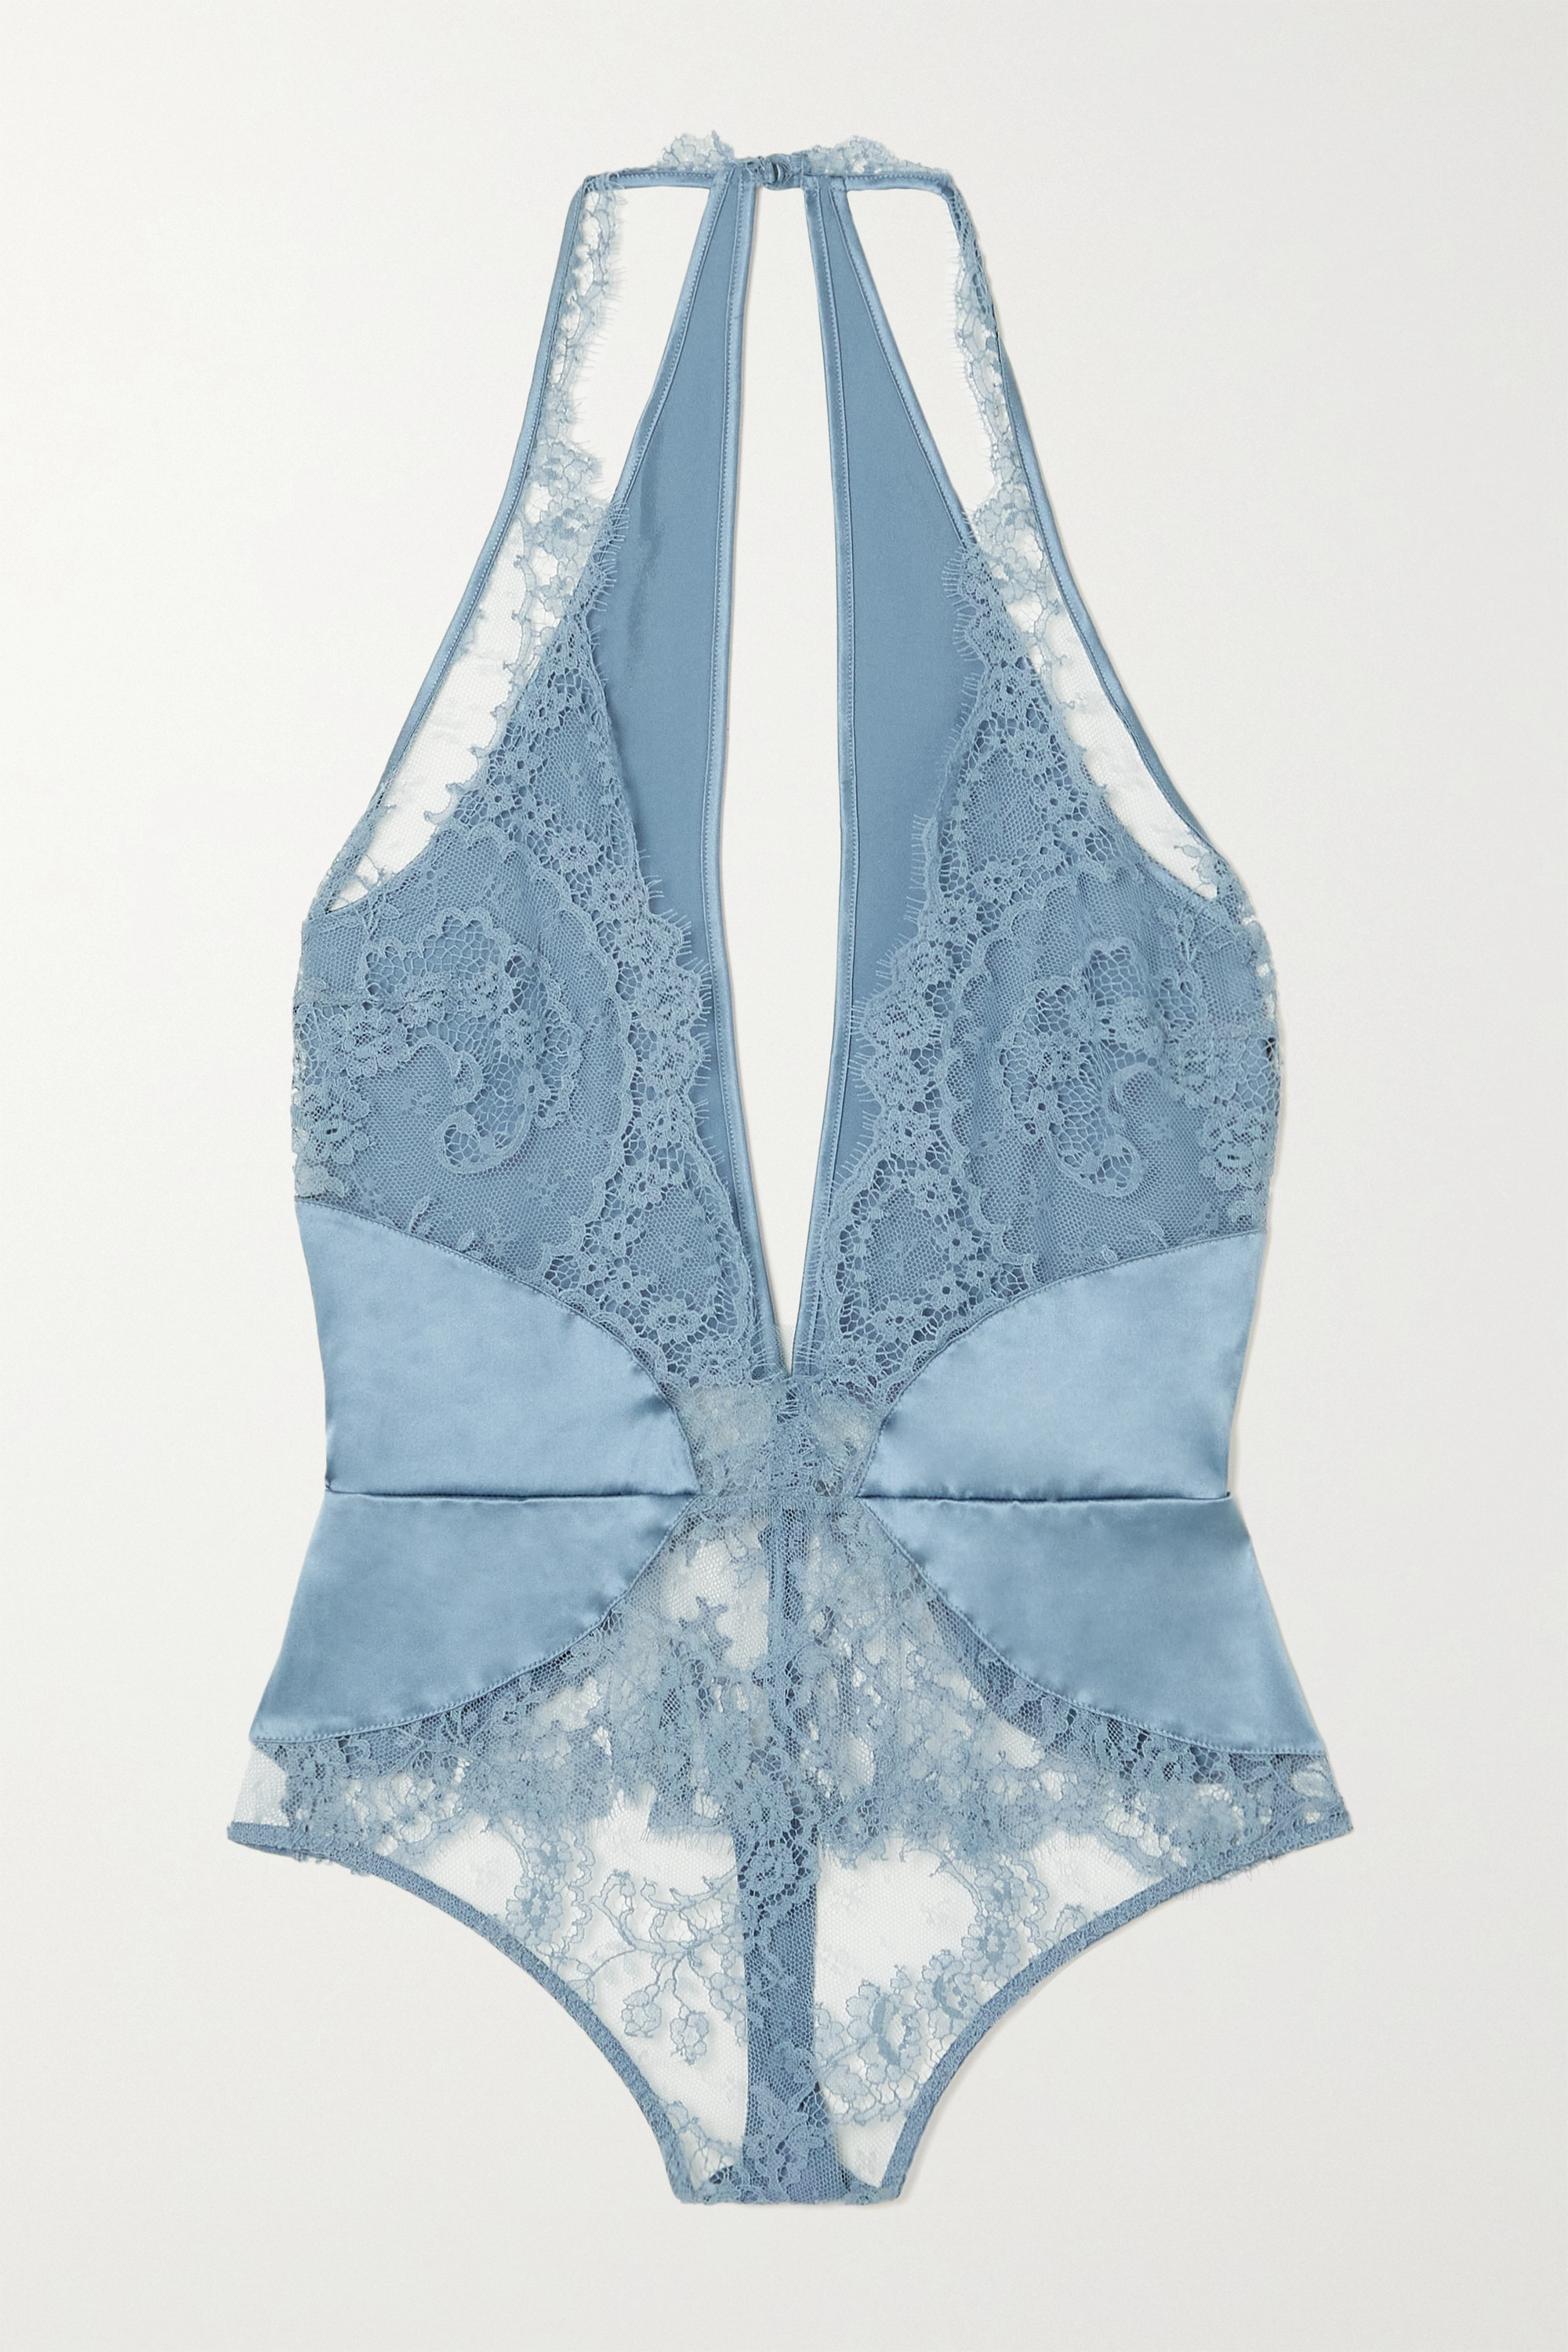 Coco de Mer Lucida cutout stretch-lace and satin thong bodysuit